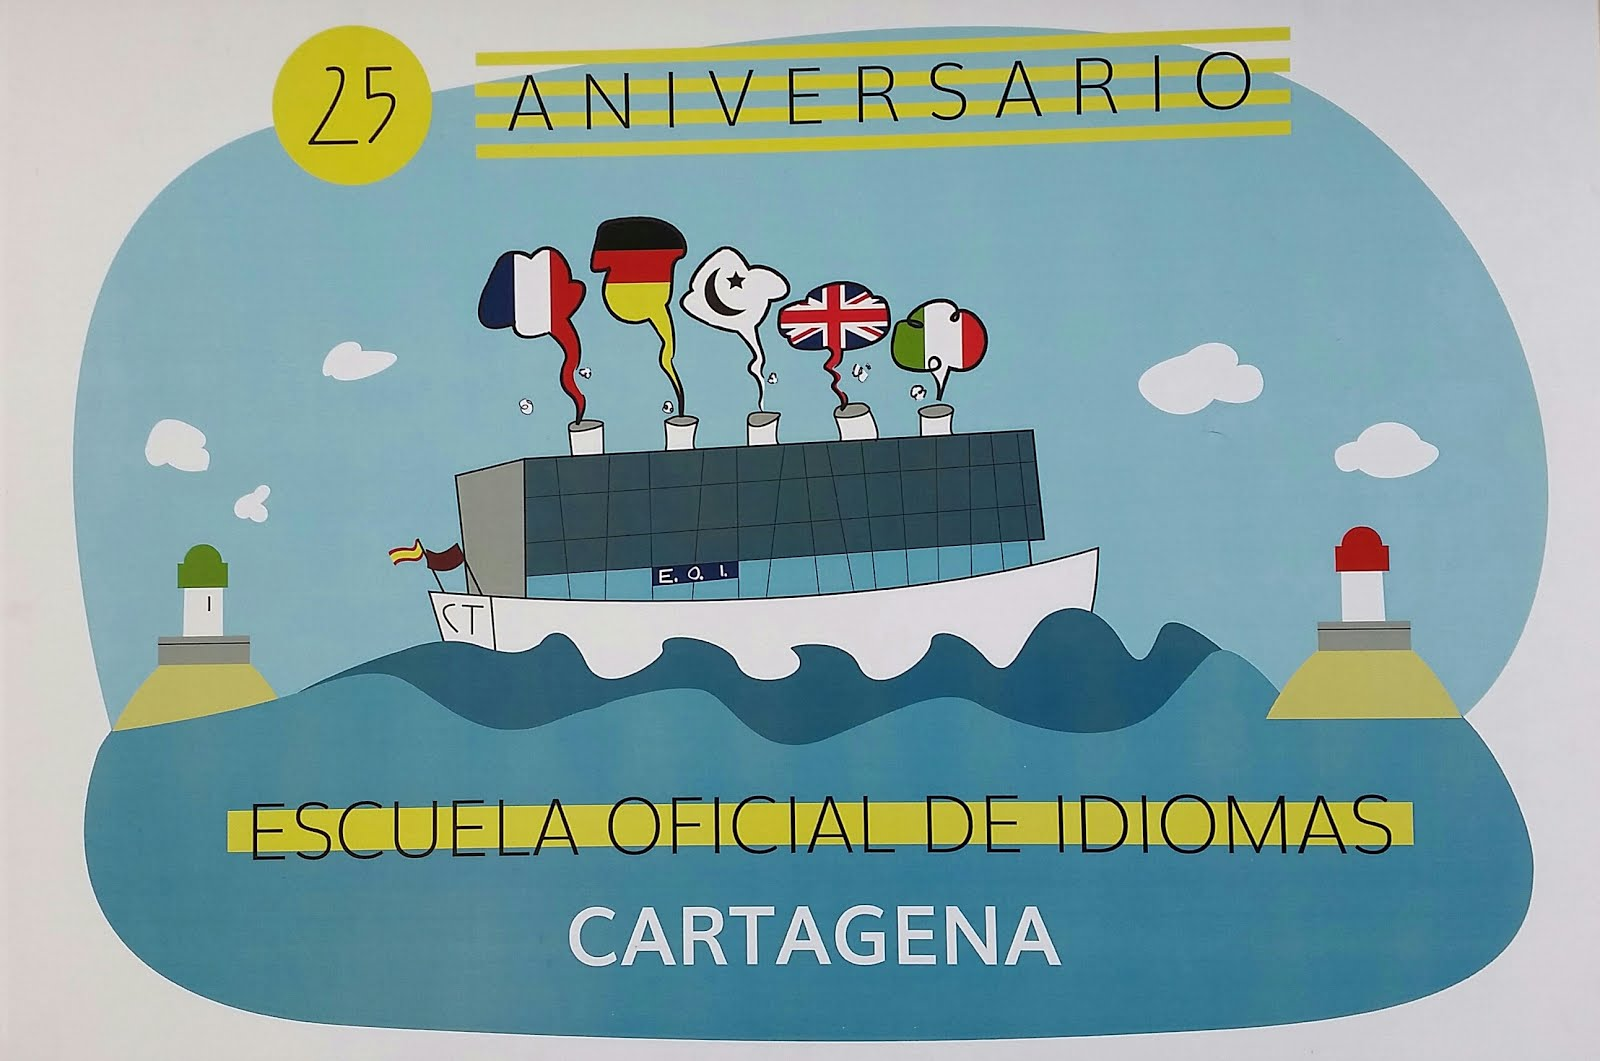 Anniversary Poster by Leo Bódalo